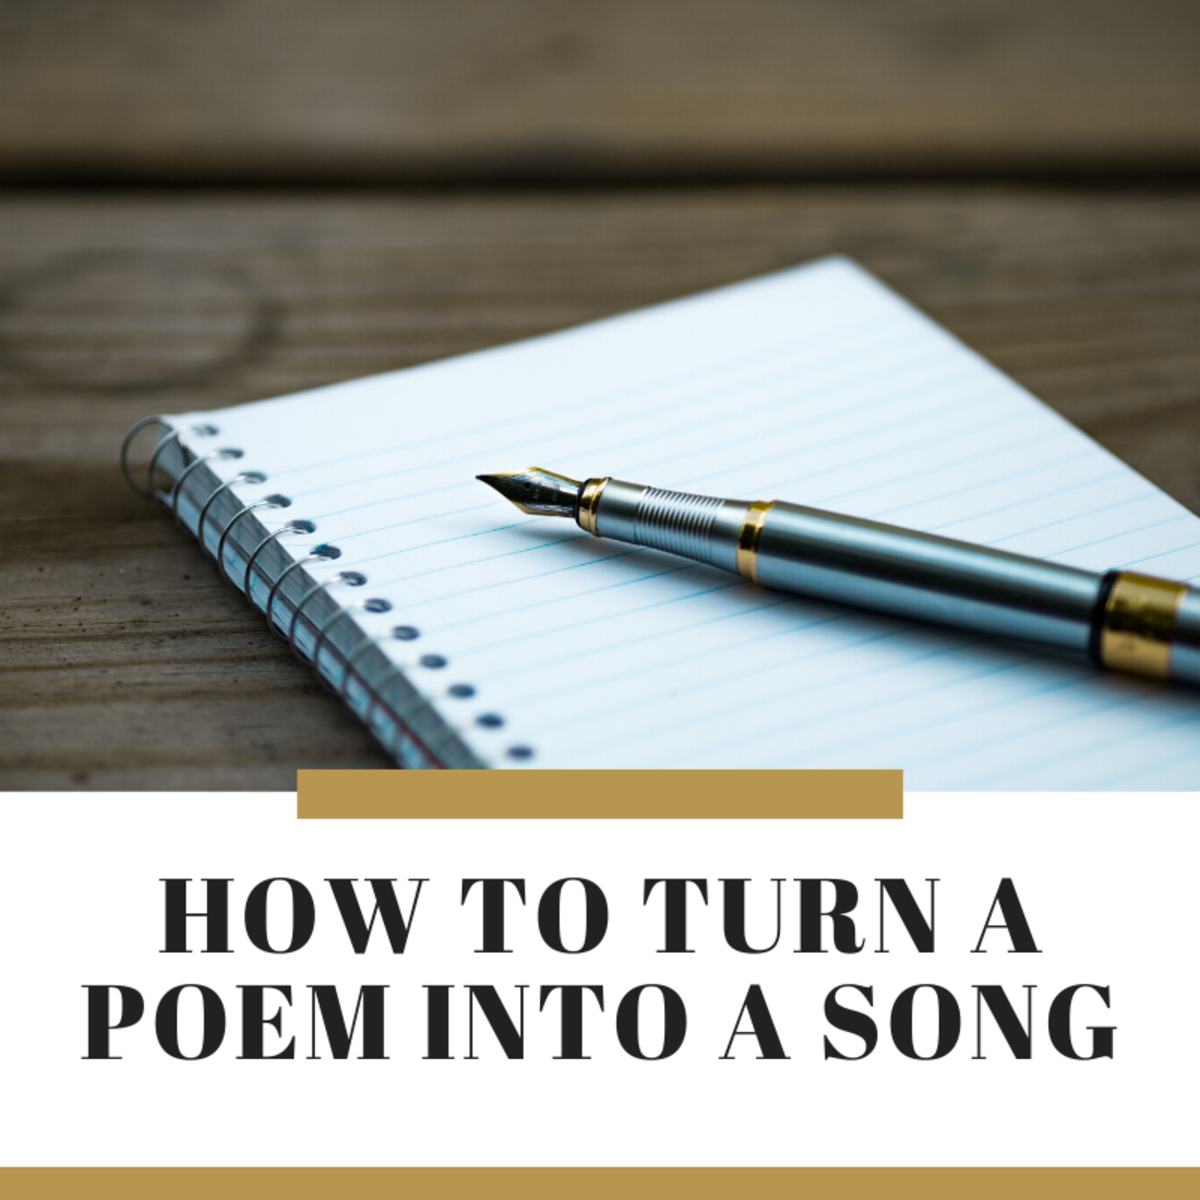 Poetry and music are closely related. Learn how to turn a poem into a song.